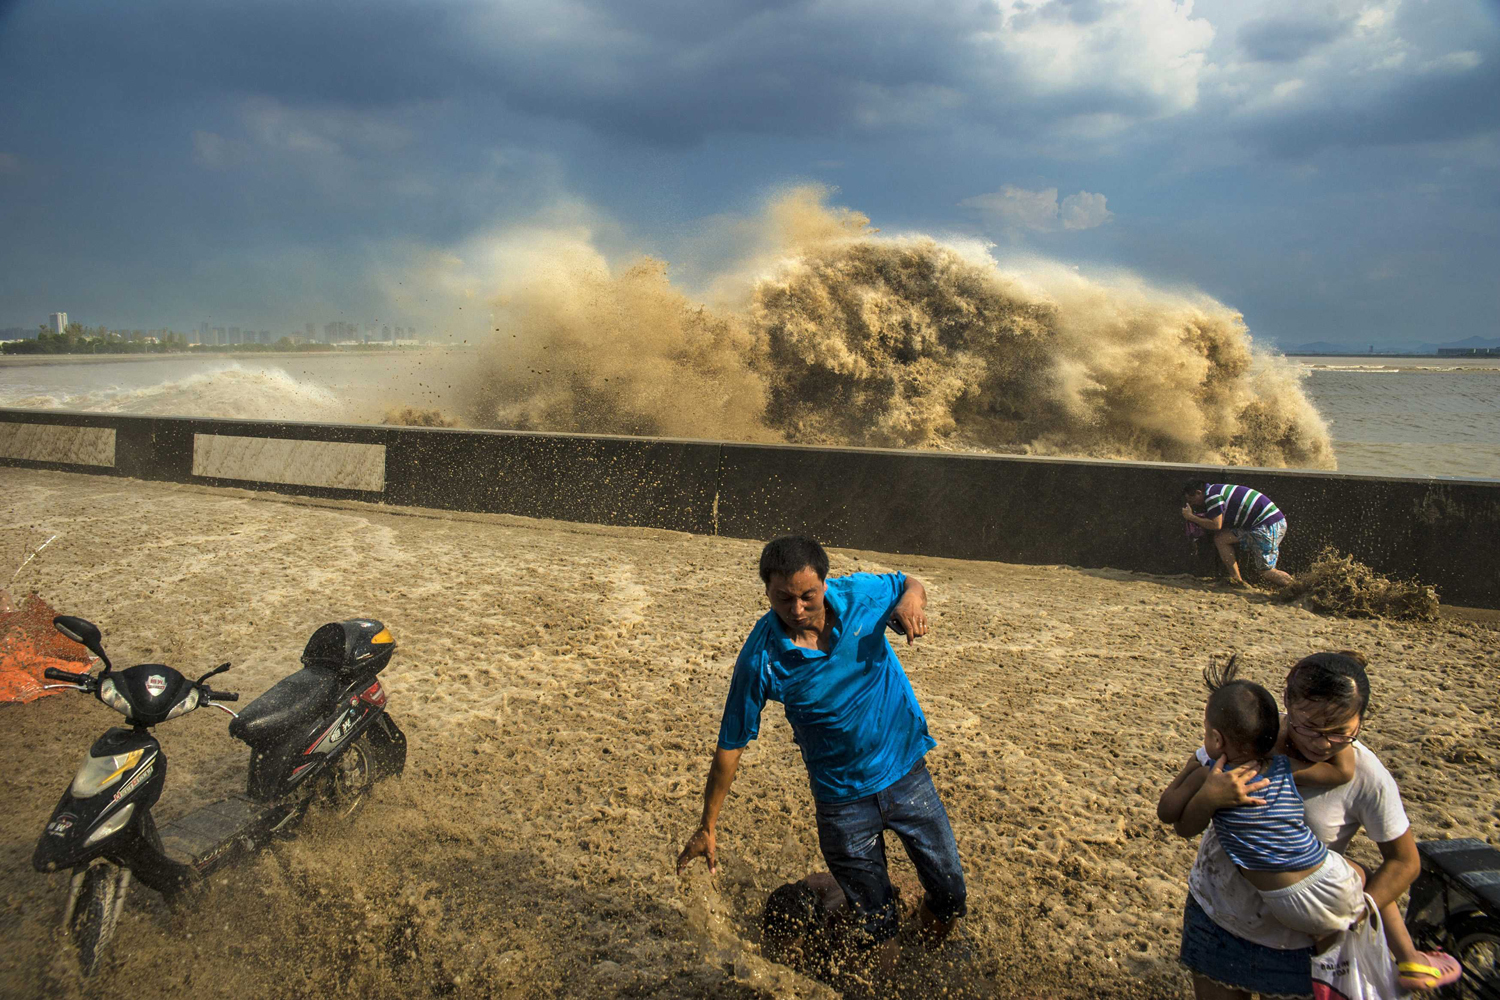 Aug. 24, 2013. Visitors run away as waves from a tidal bore surge past a barrier on the banks of Qiantang River, in Hangzhou Zhejiang province, China.